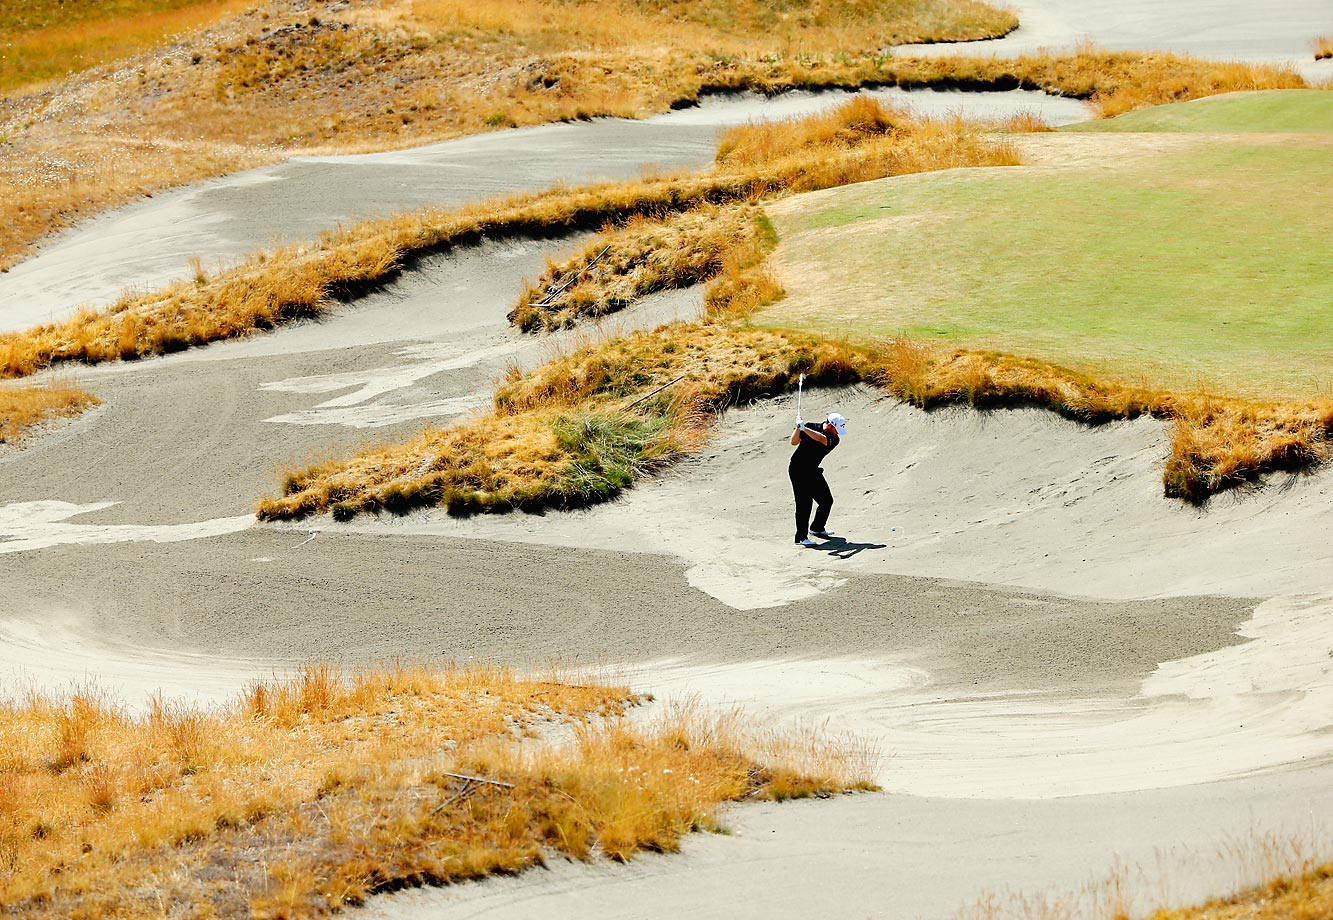 Branden Grace of South Africa hits a shot from a bunker during a practice round at the 115th U.S. Open Championship.